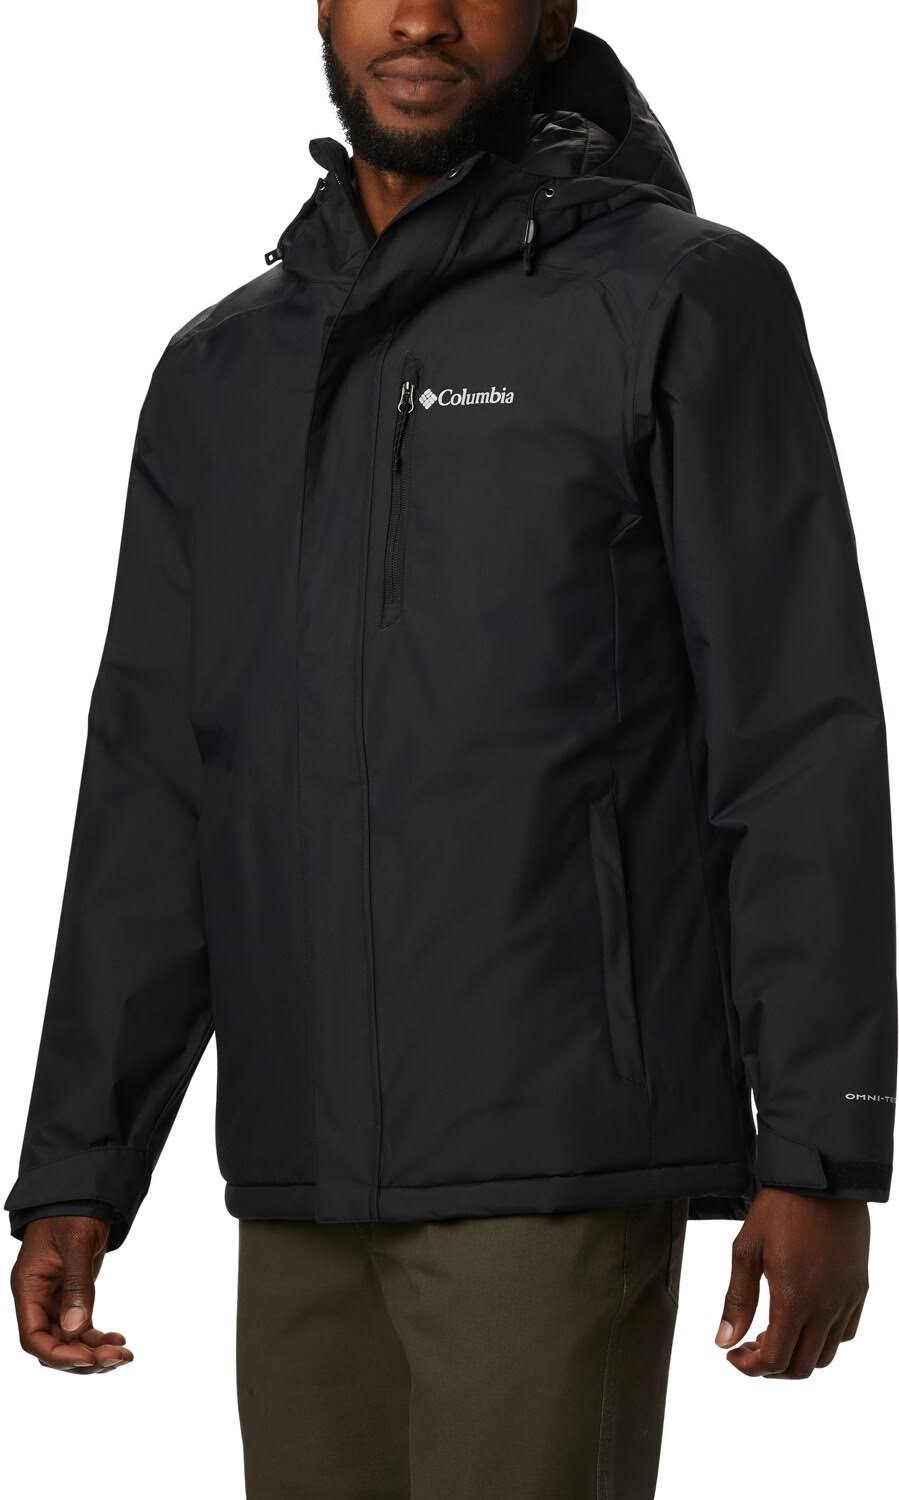 Columbia Men ' S Tipton Peak Insulated Jacket - Black